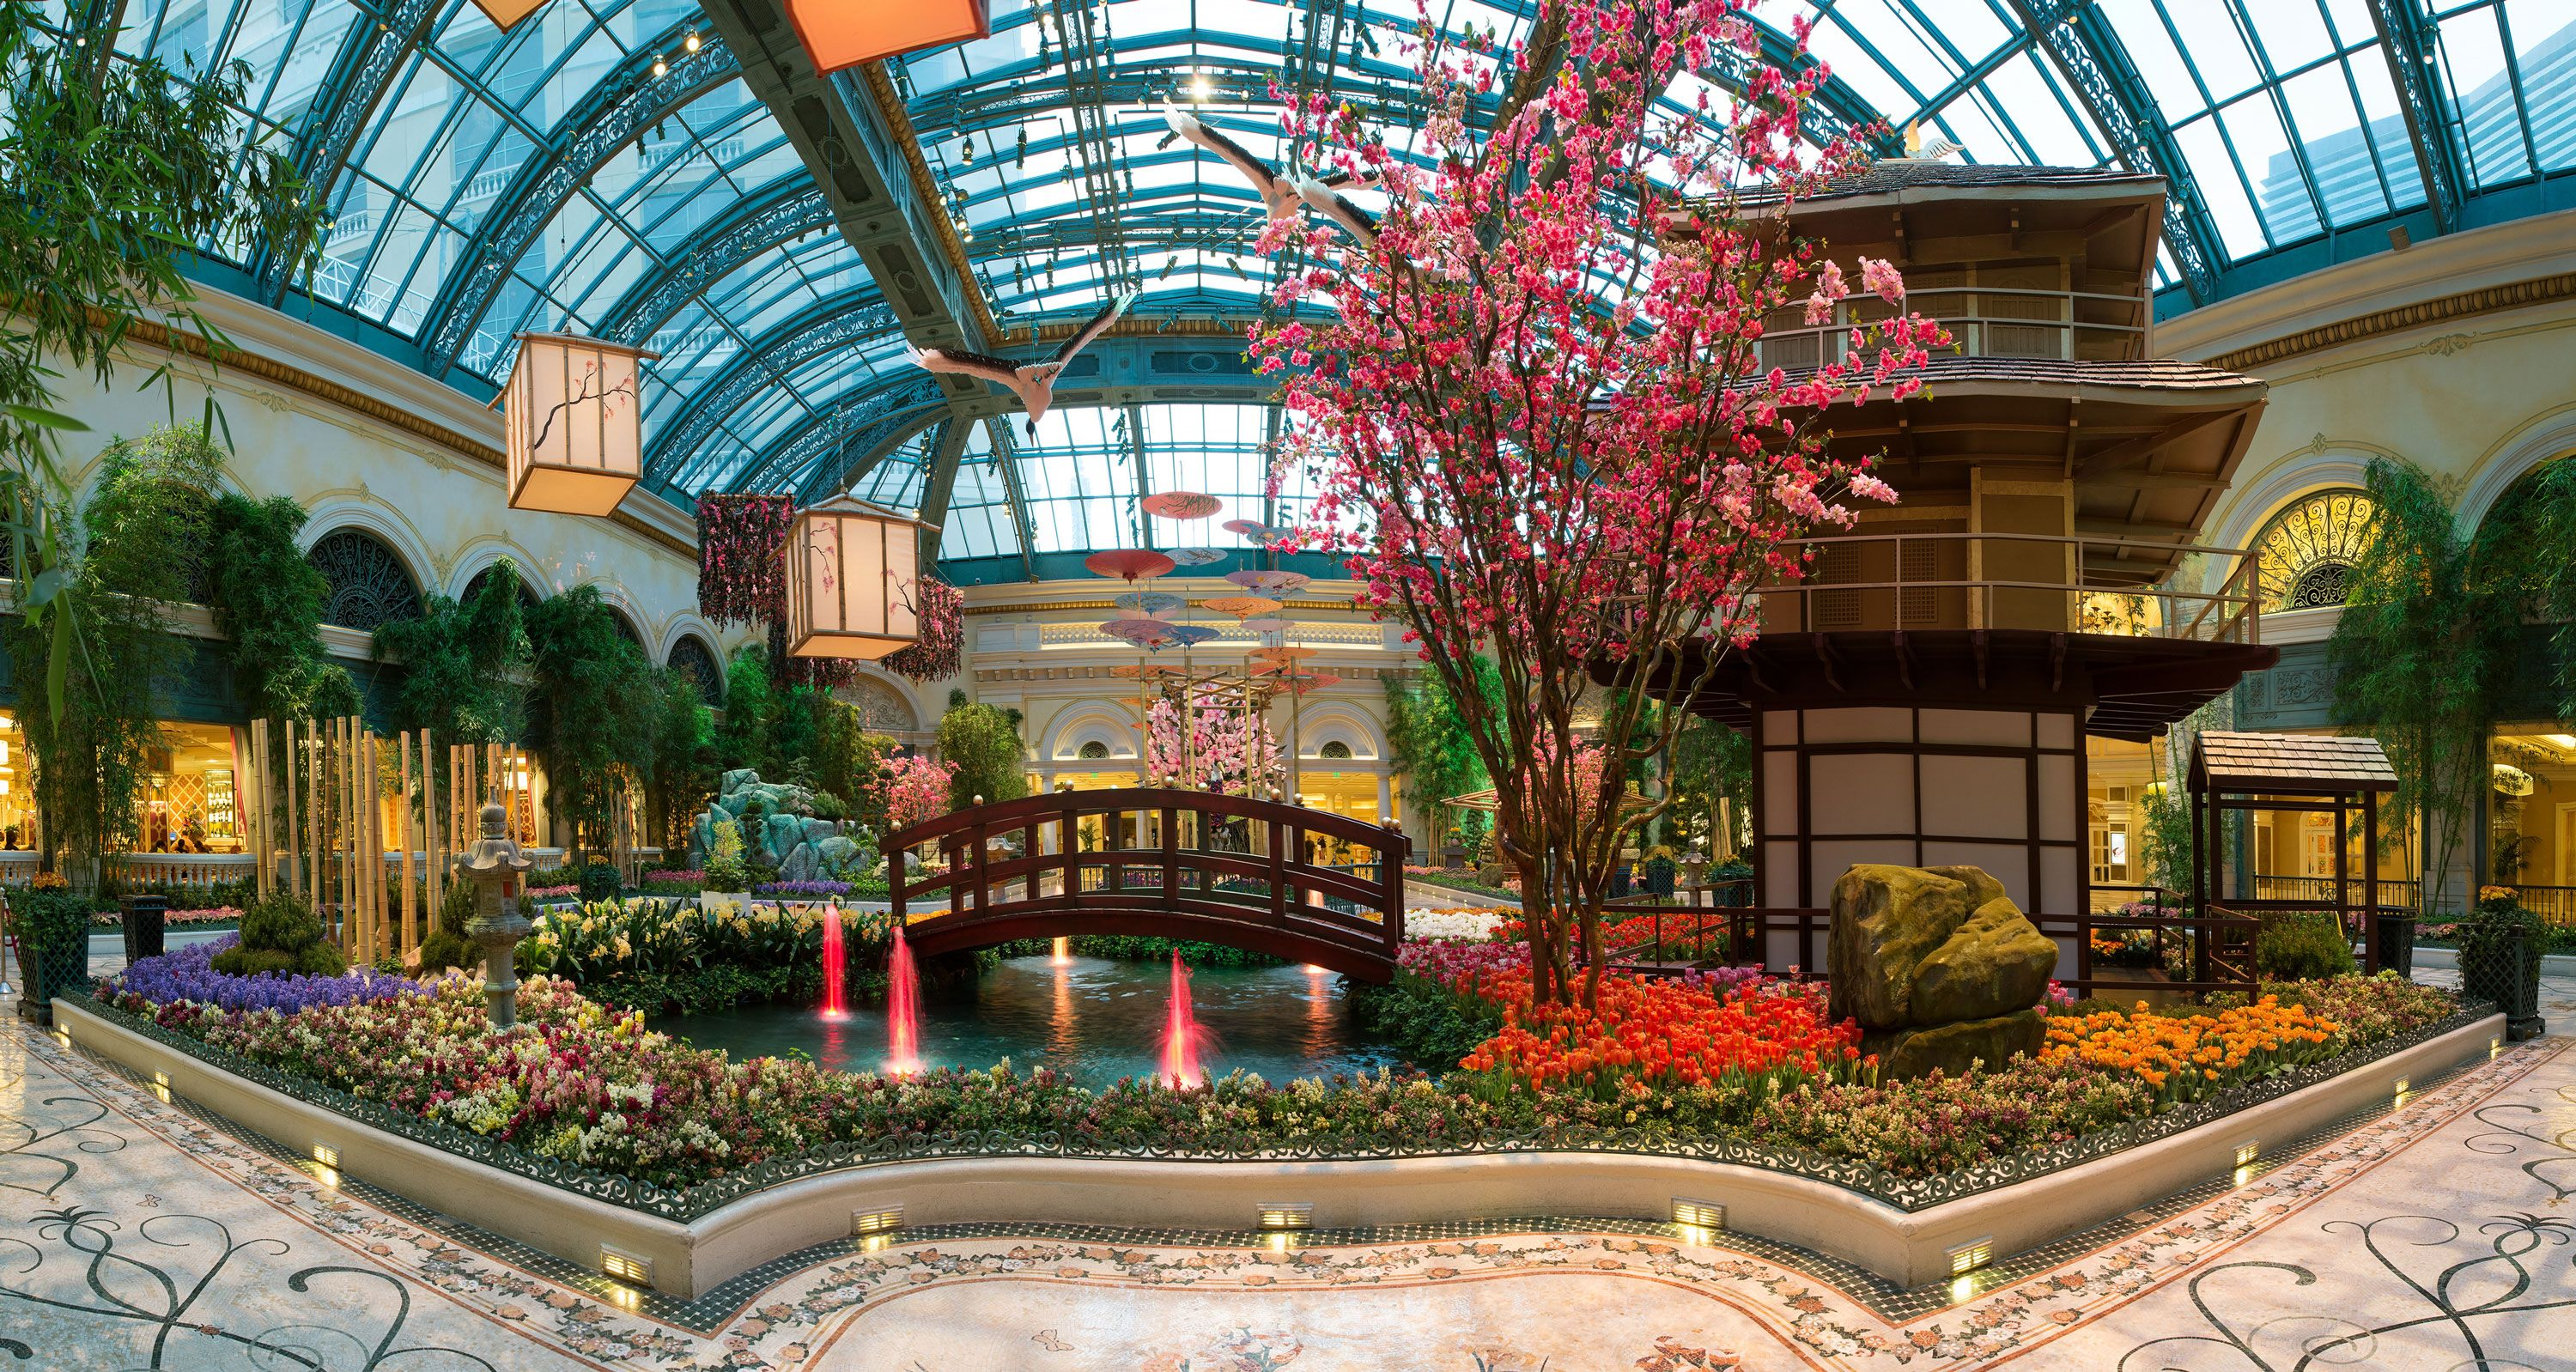 The West Bed of the Japanese Spring Display in the #Bellagio ...